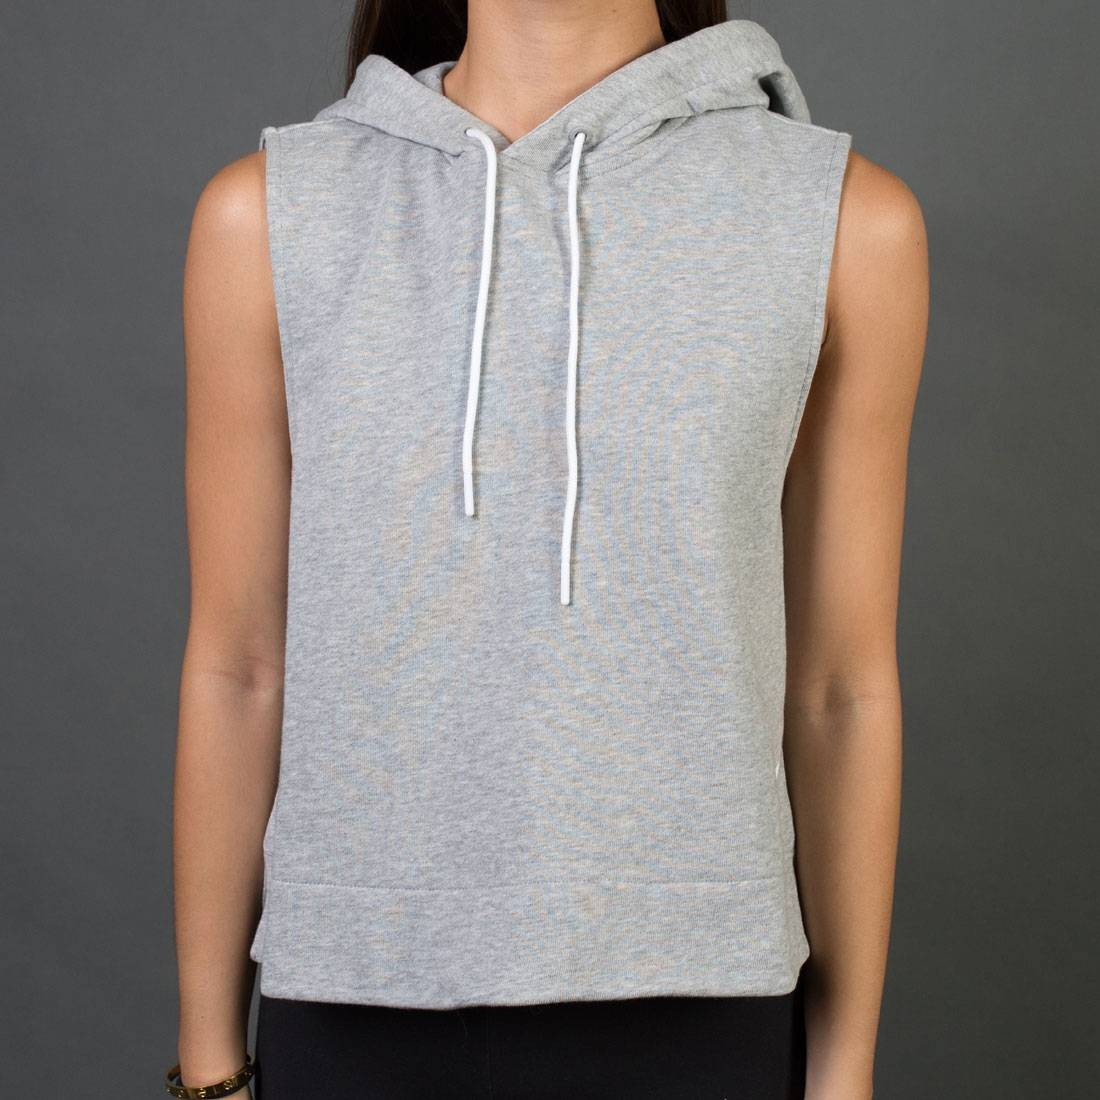 be9f8e056347 Adidas Women Sleeveless Pullover Hoodie gray medium grey heather